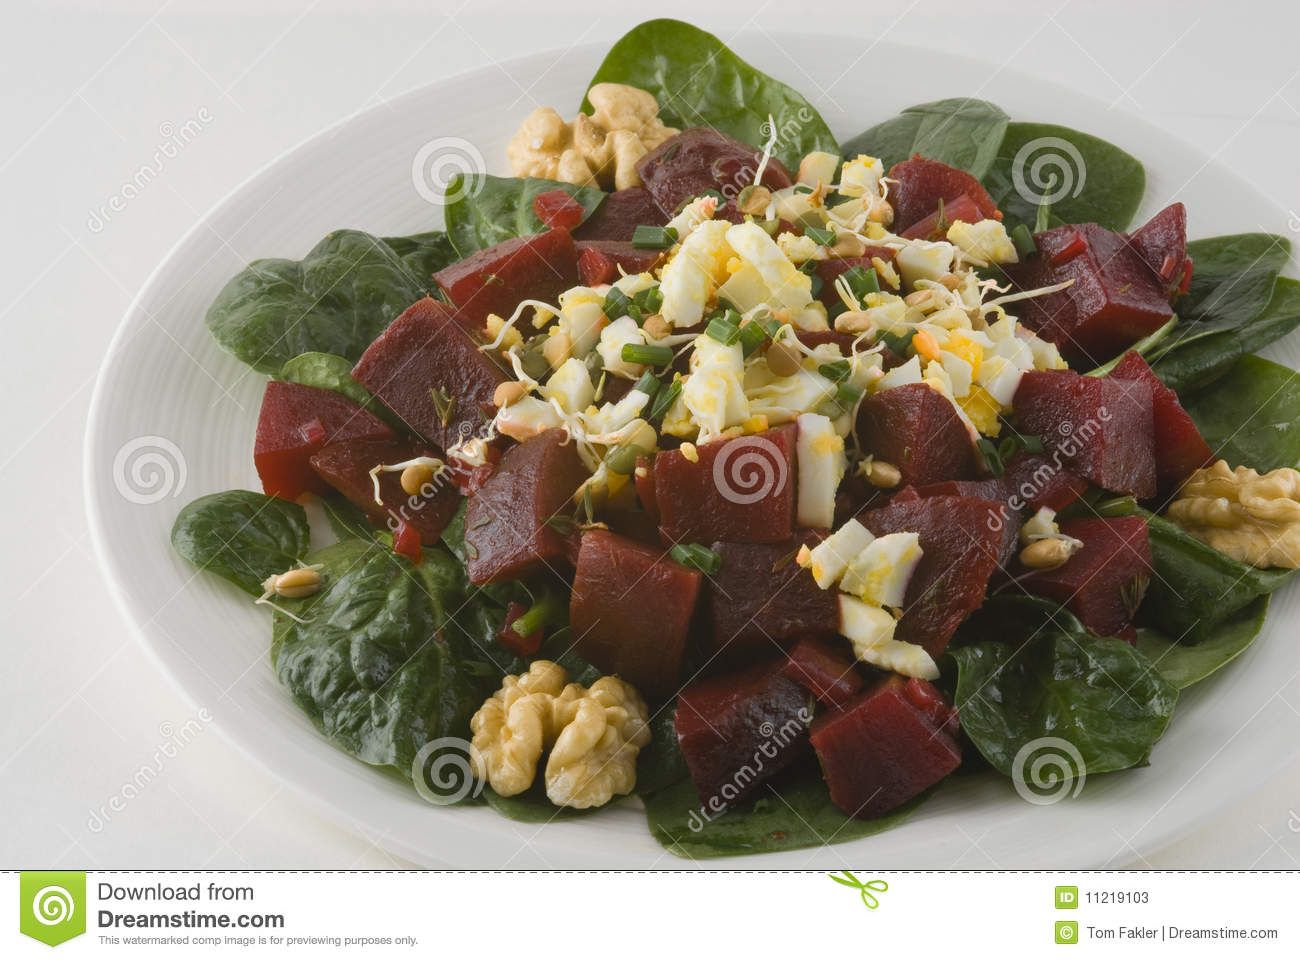 Salad with beets, boiled egg, and bean sprouts, walnuts on a bed of ...